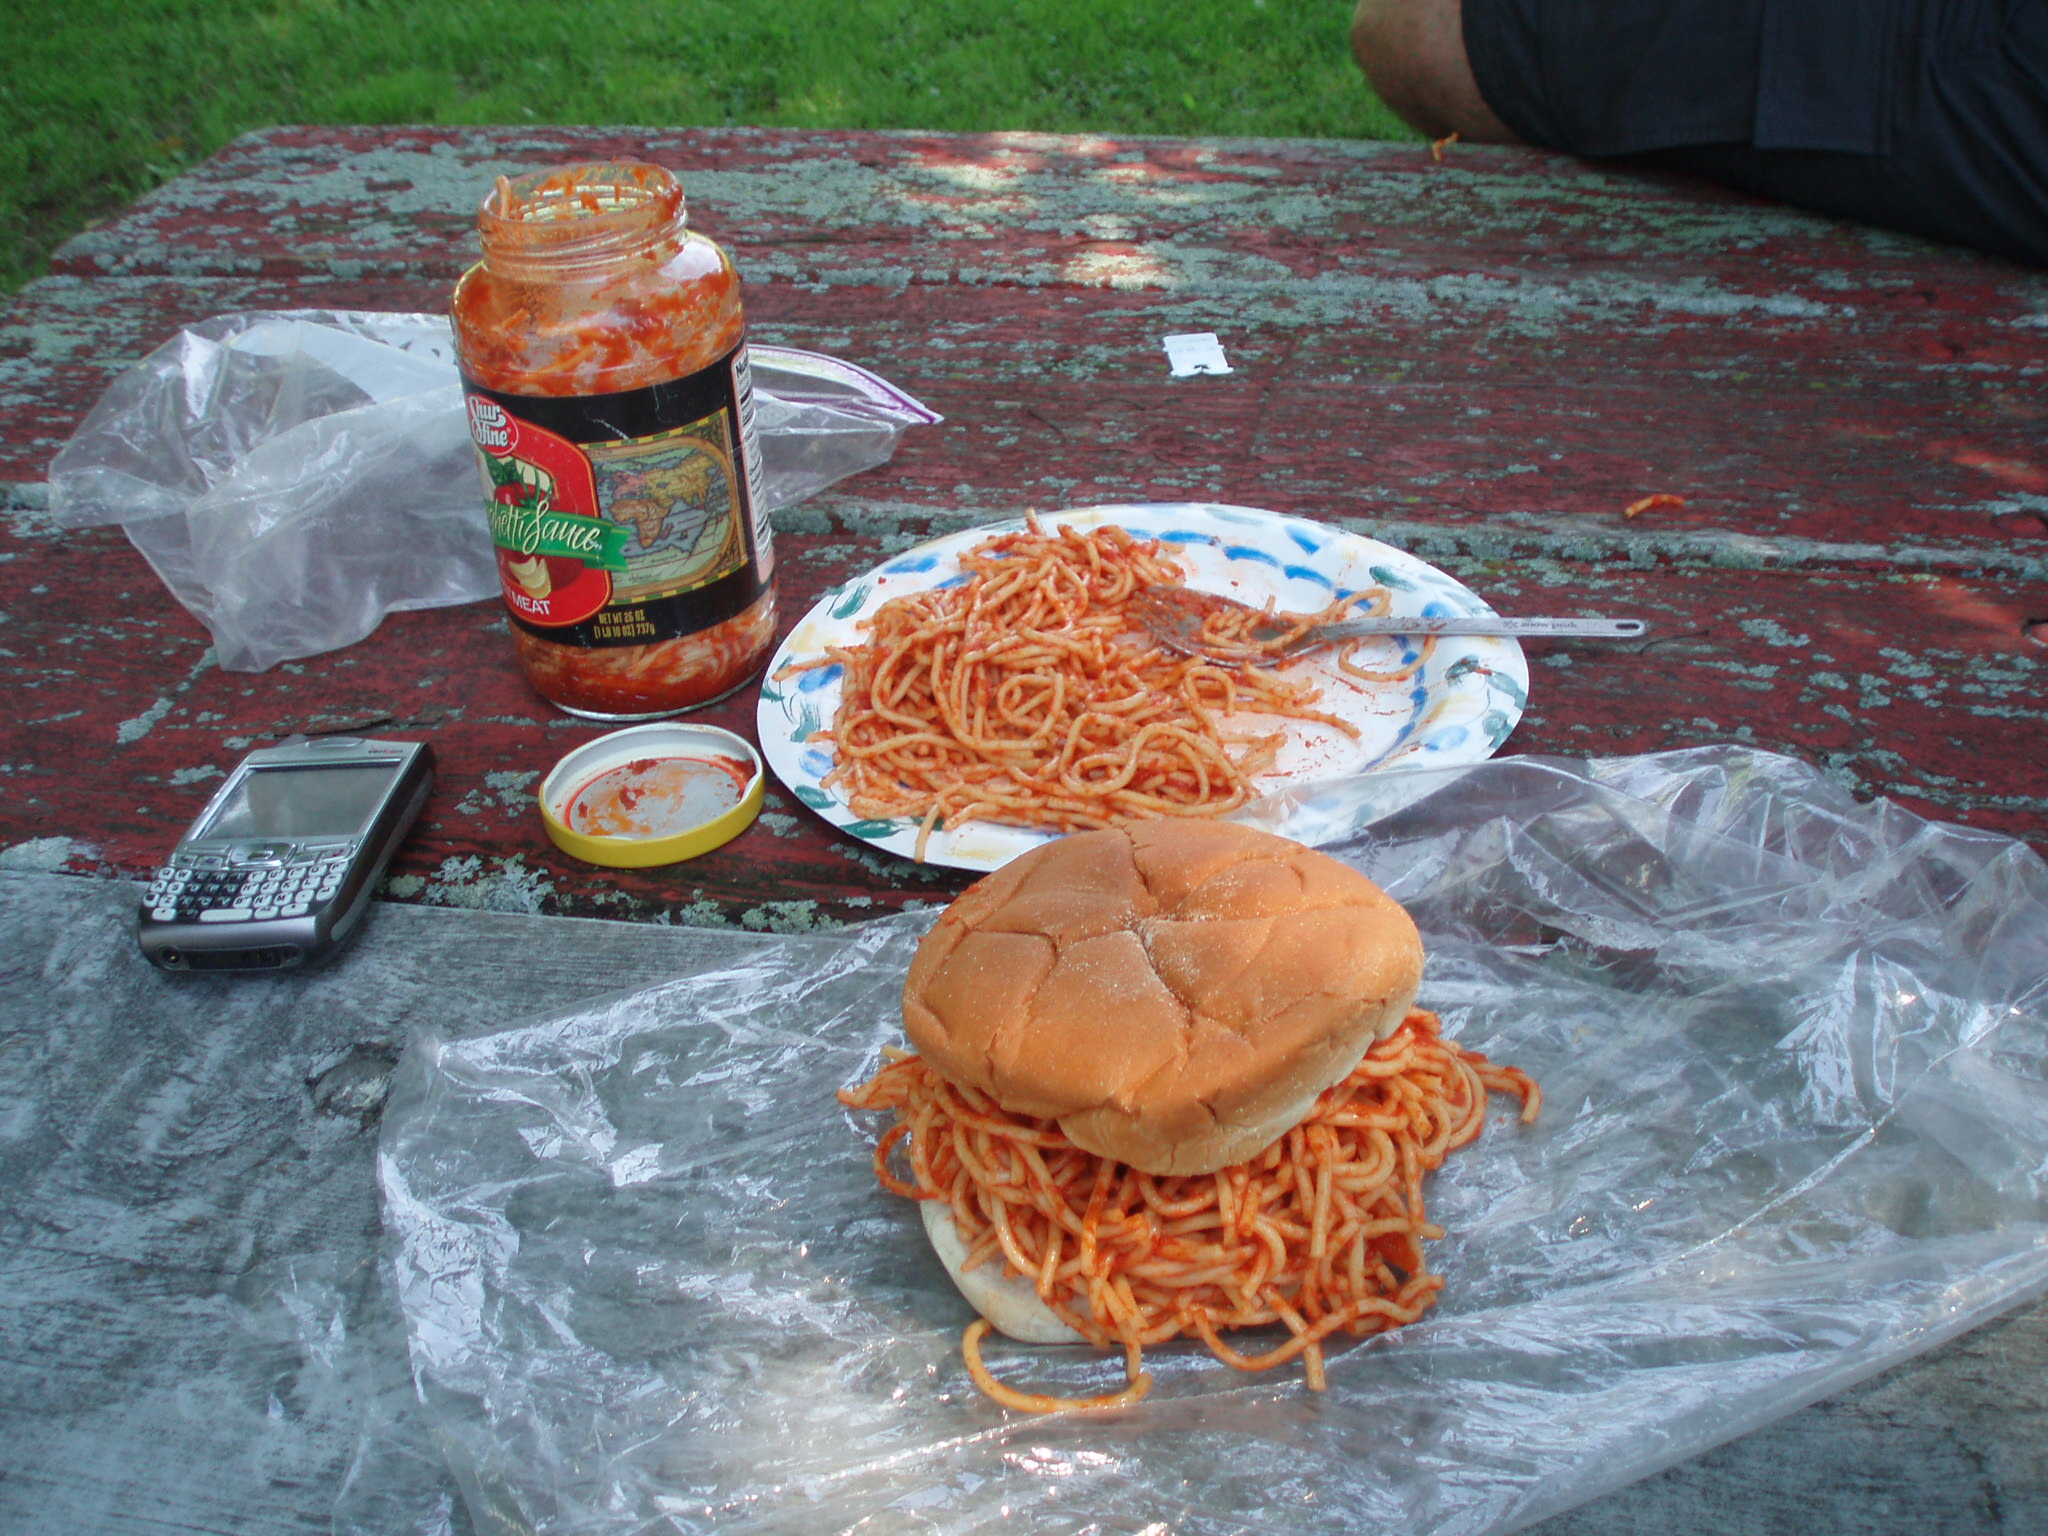 spaghetti sandwiches and bicycle touring